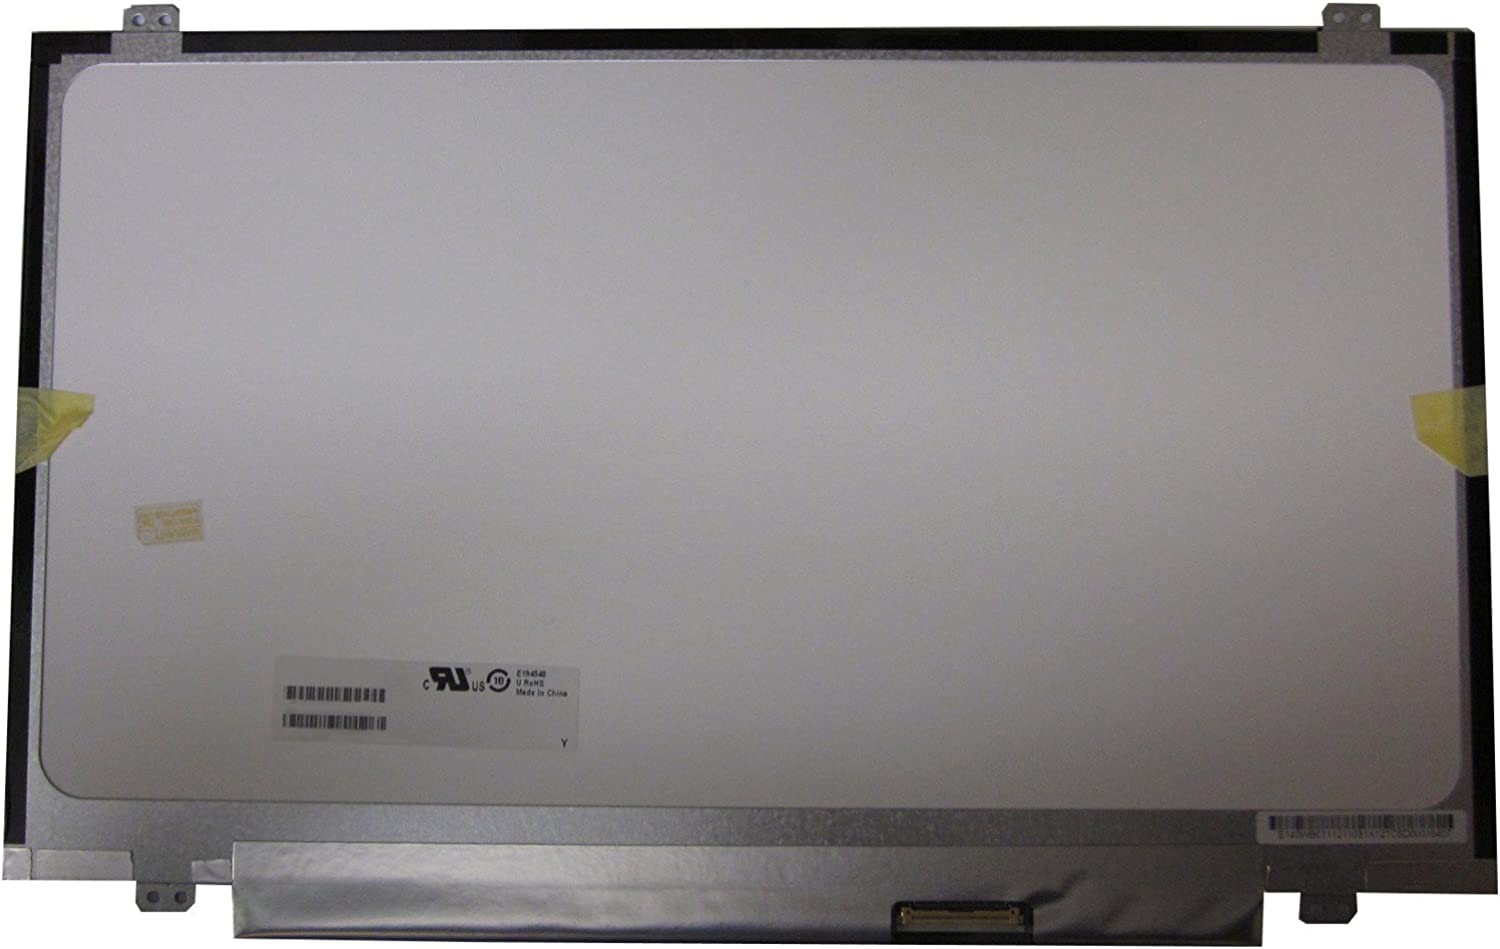 Replacement ASUS X450C-WX010D ASUS X453M X453MA Asus K450LD K450LA ASUS UL80 B140XW02 V.1 Laptop Screen 14.0 LED LCD WXGA HD Display